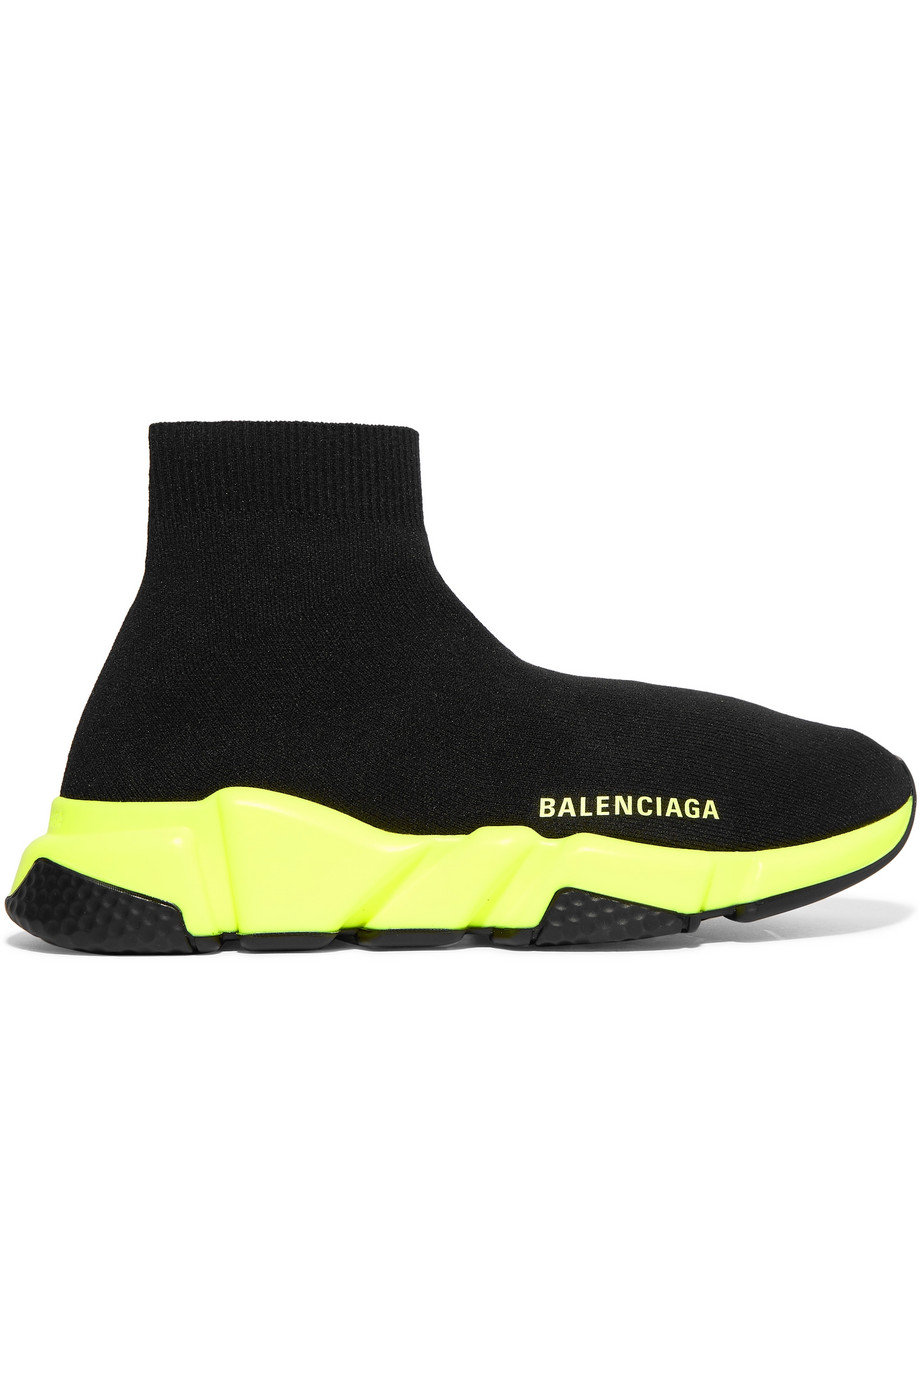 buying now best selling factory price Balenciaga Speed Trainer black and green